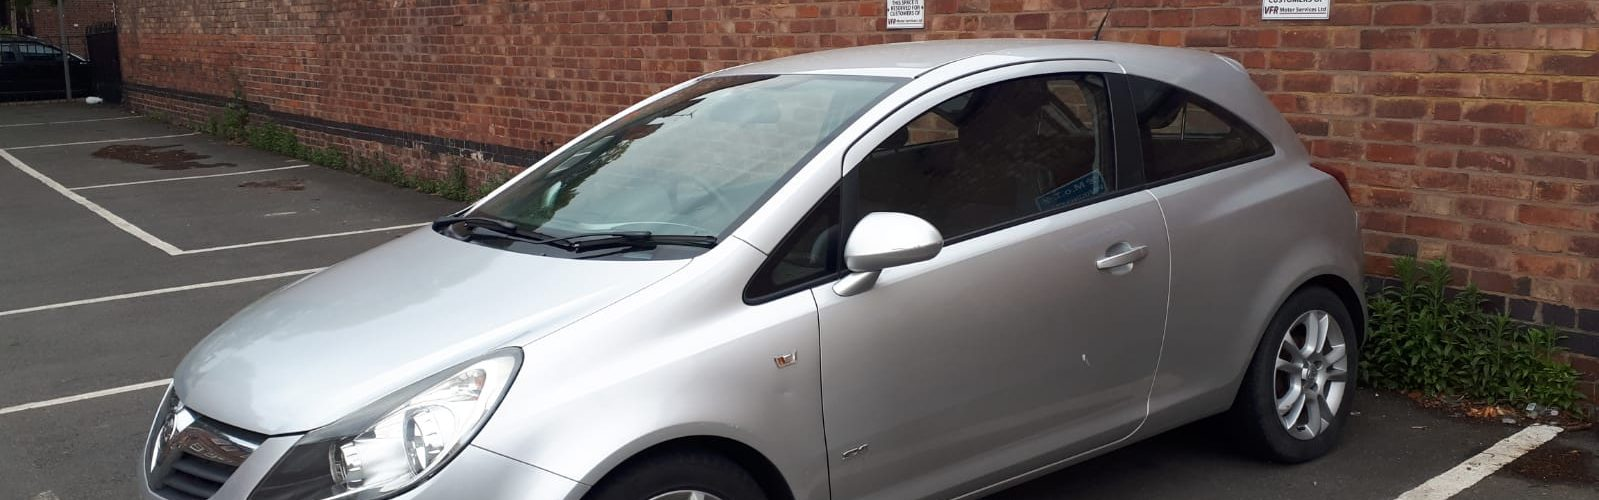 For Sale - 2008 Vauxhall Corsa SXi - side